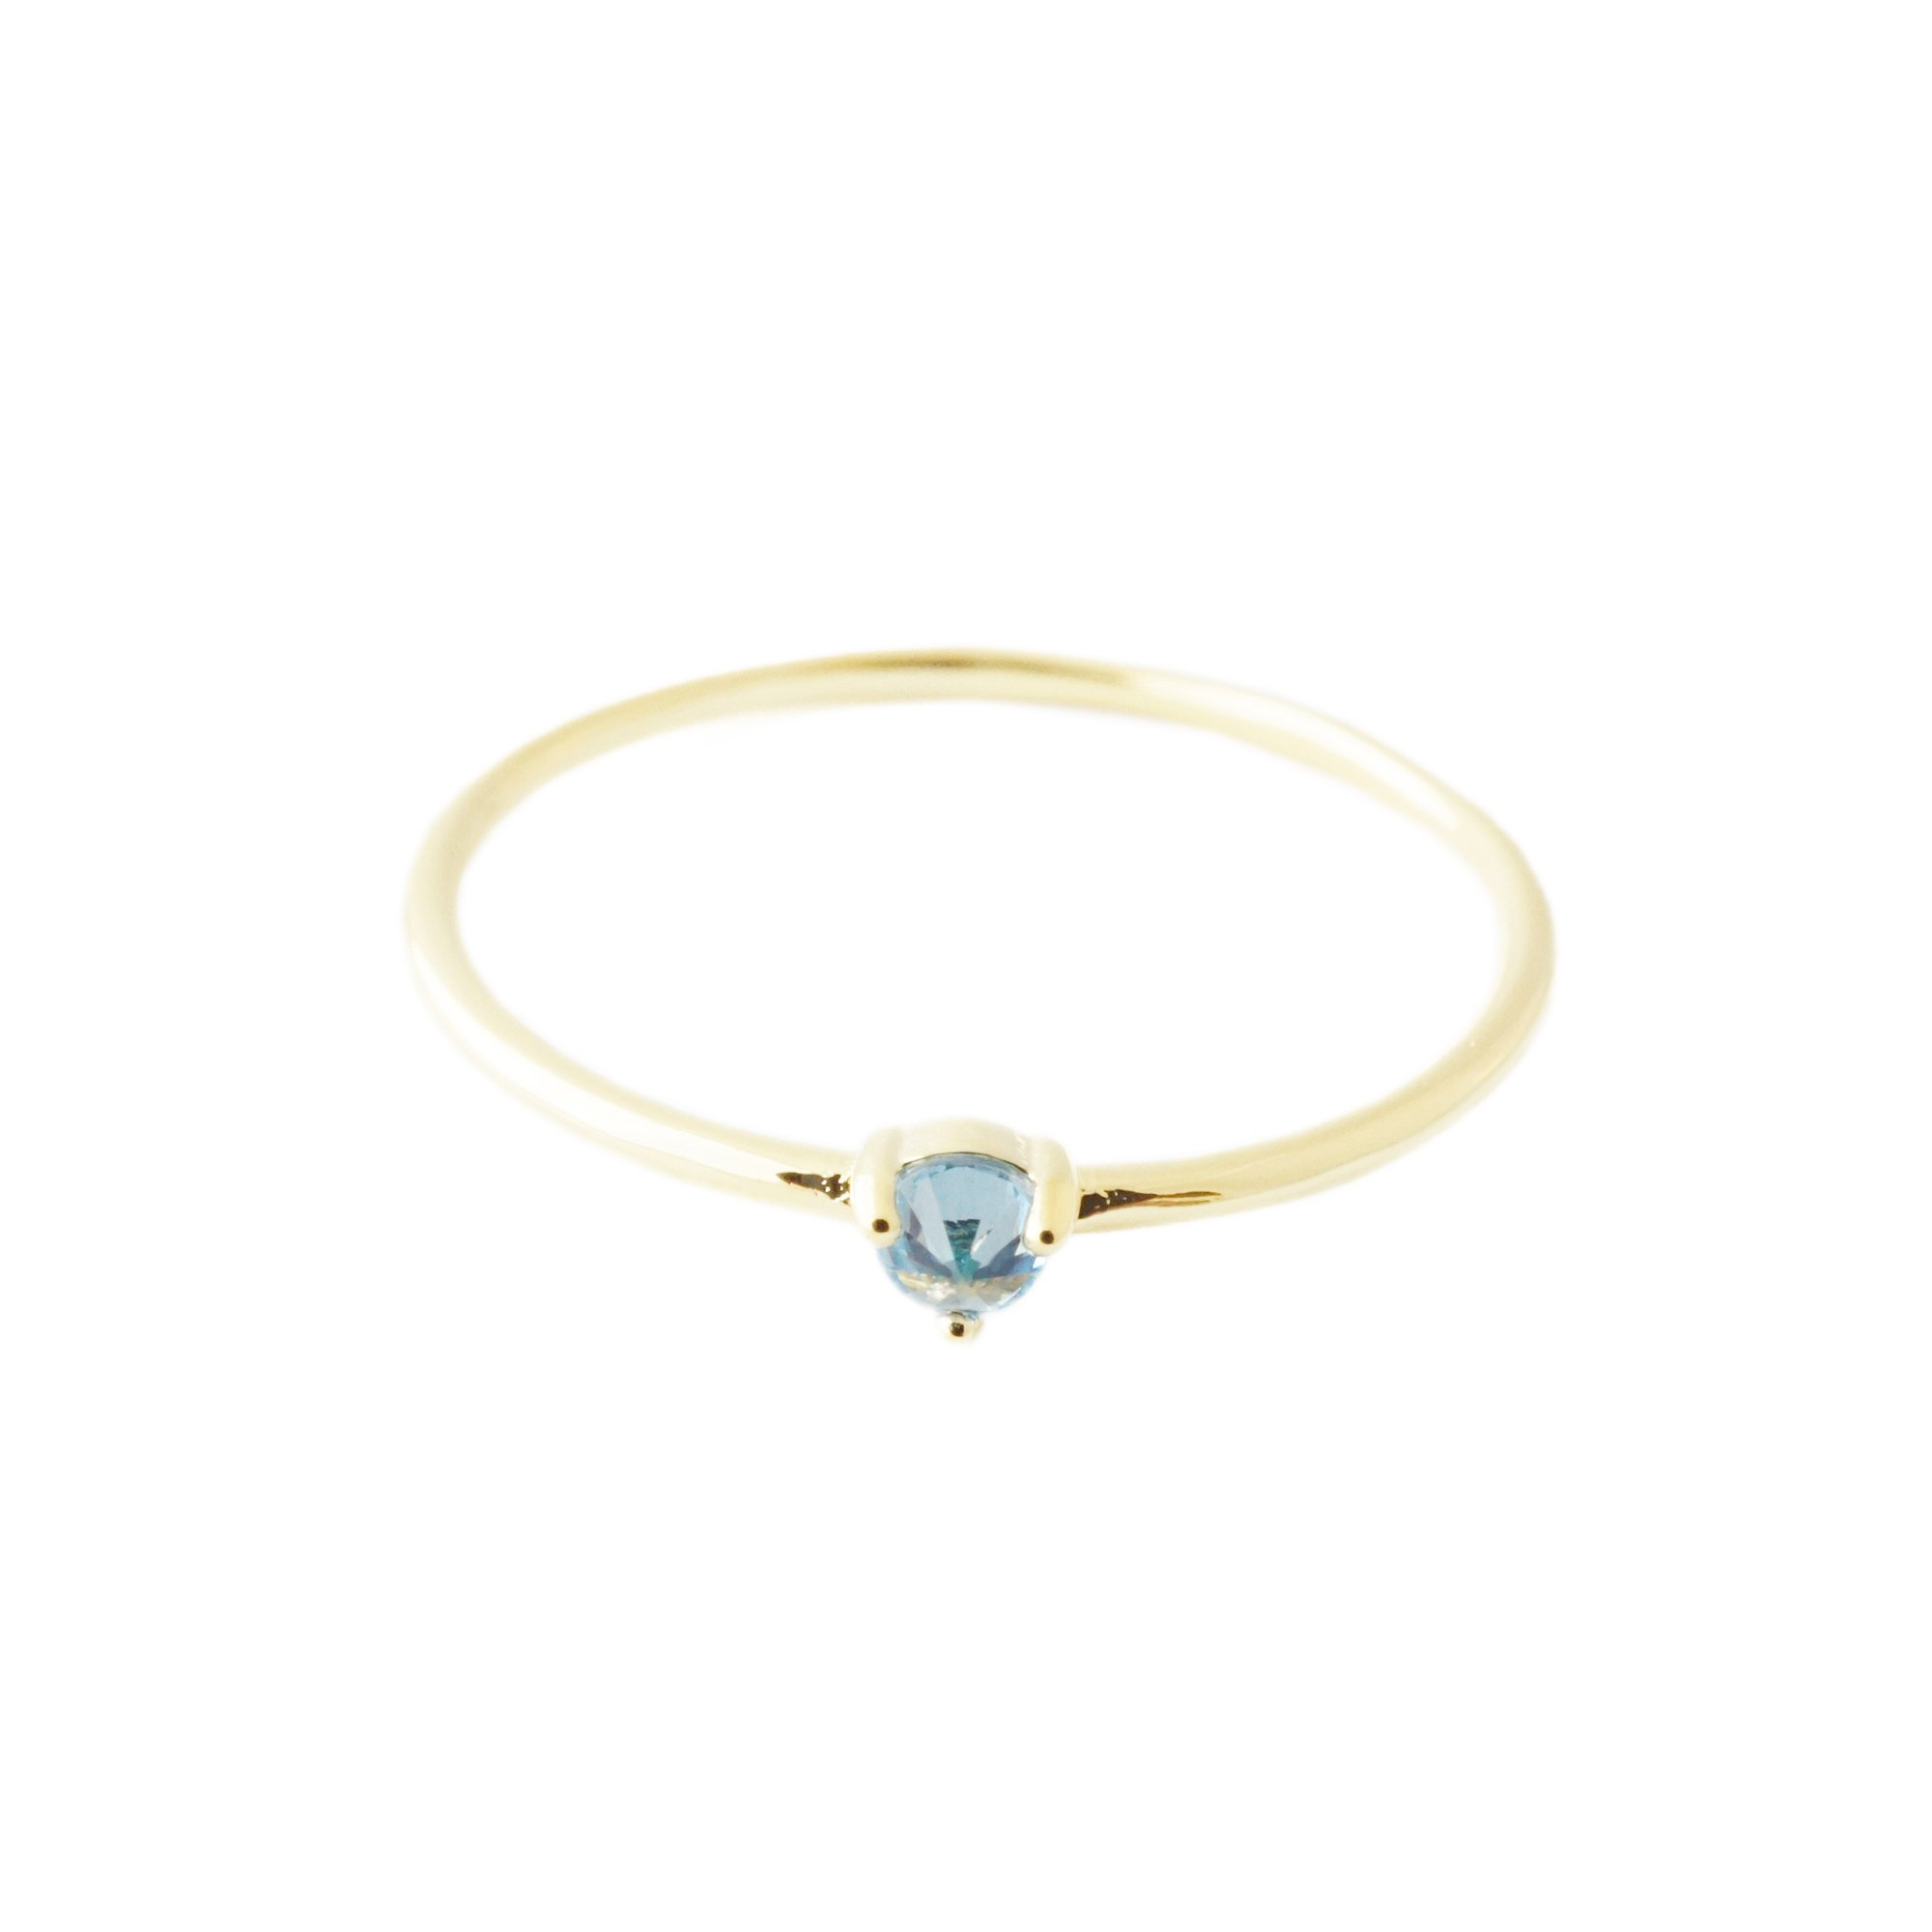 HONEYCAT Blue Aquamarine Crystal Point in 24k Gold Plate | Minimalist, Delicate Jewelry